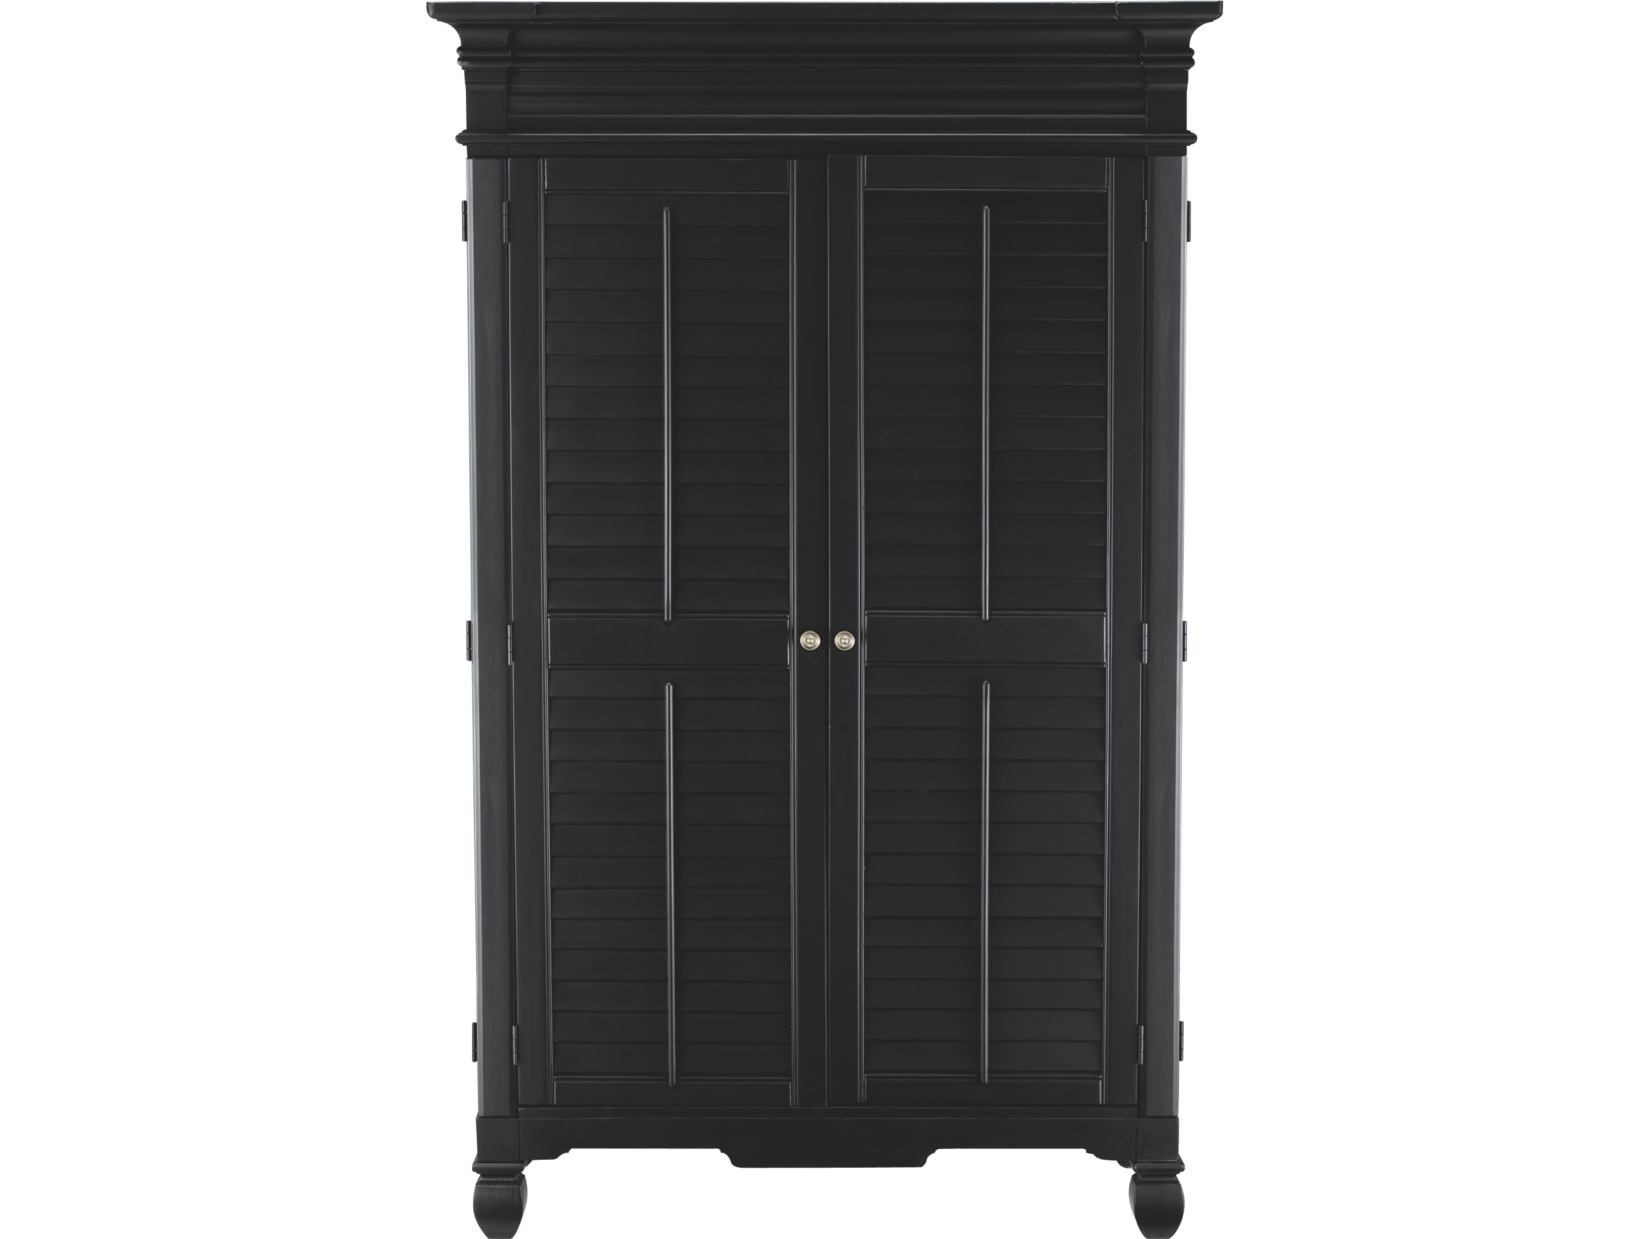 7178bd1ca64d5d0a84b03d9750bf3b10 plantation cove black armoire value city furniture  at mifinder.co